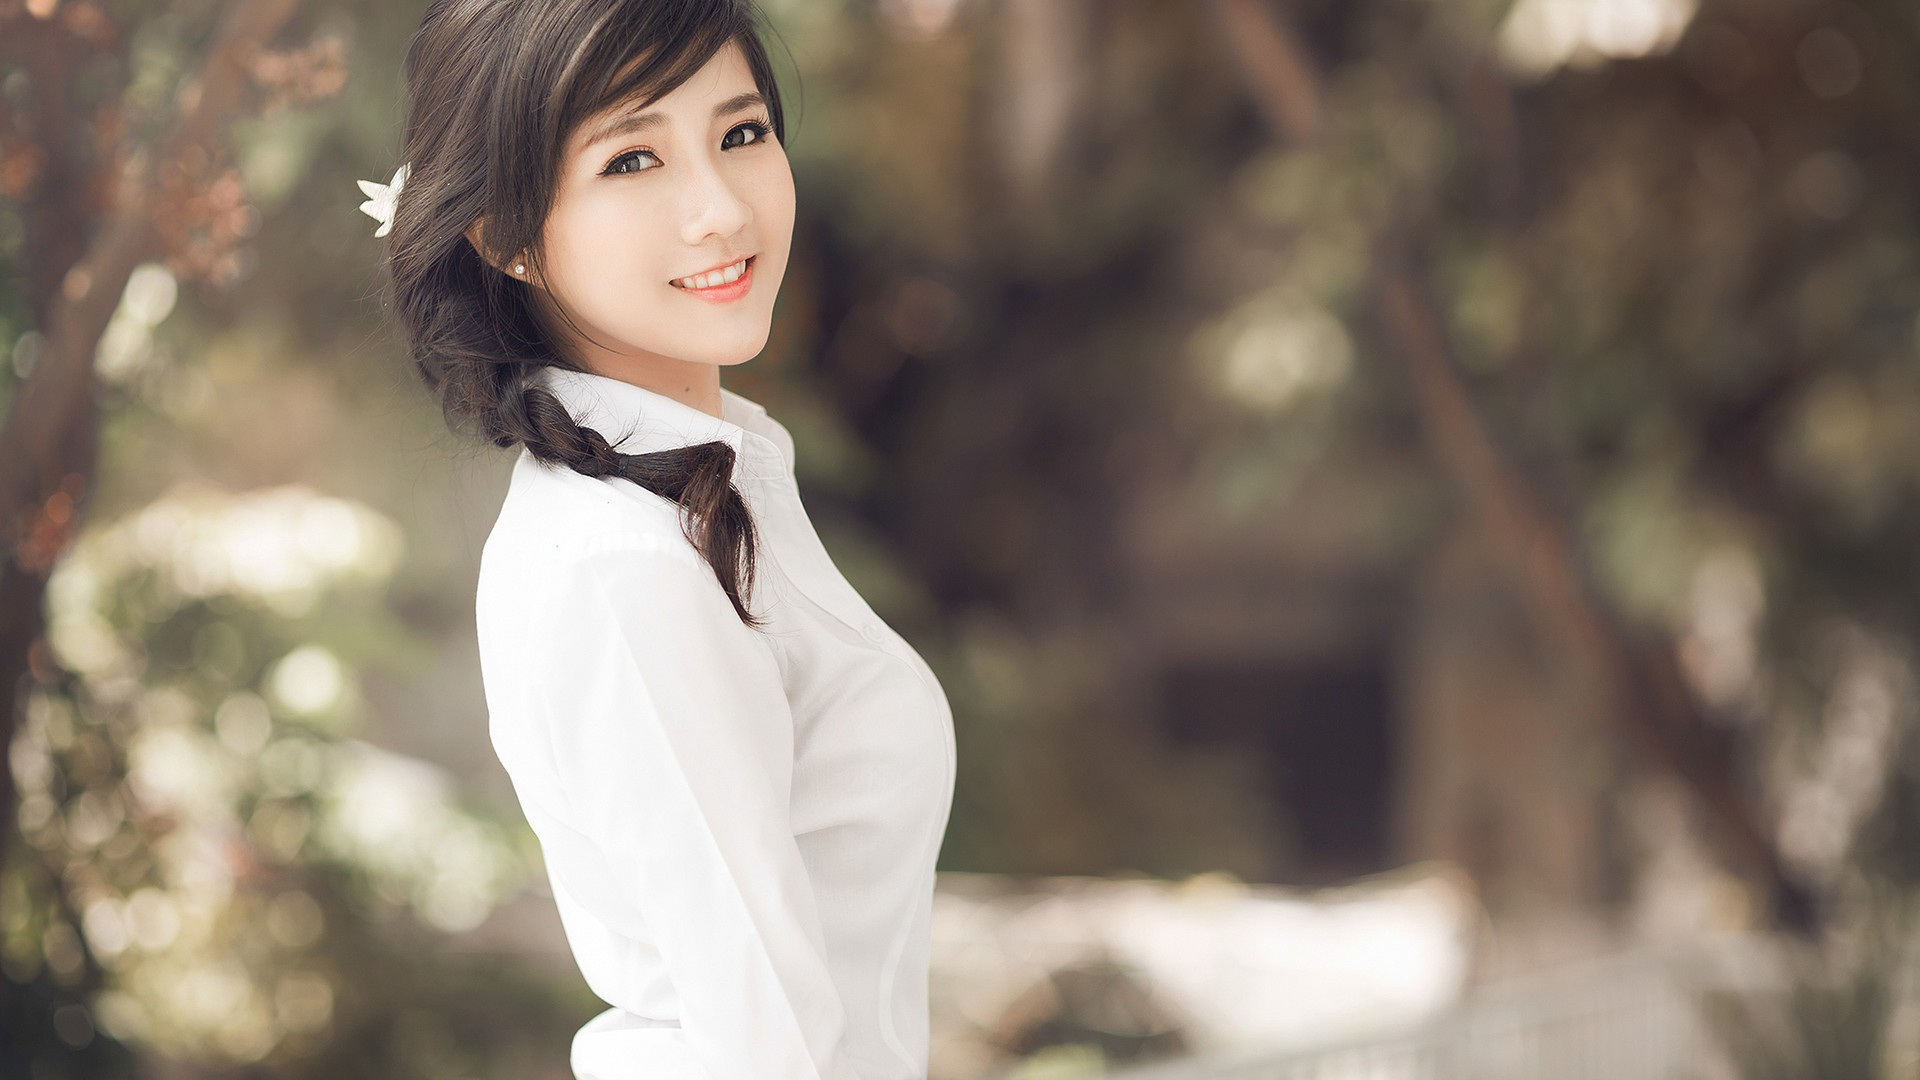 Collection of Chinese Girl Wallpaper on HDWallpapers